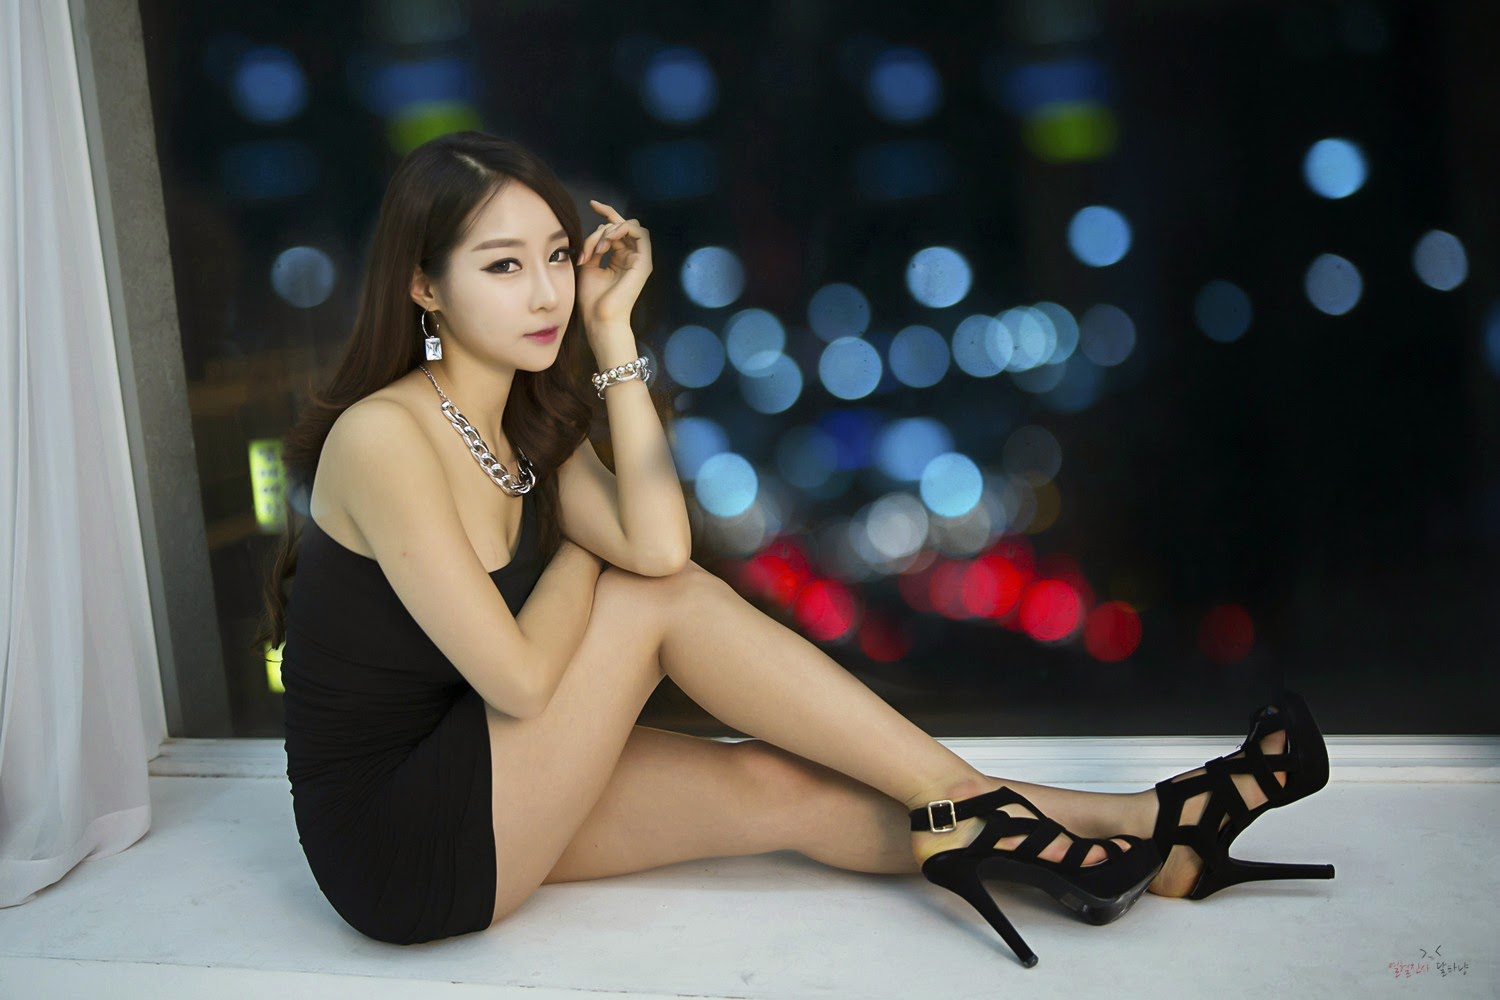 1 Lovely Eun Ji Ye In Studio Photo Shoot - very cute asian girl-girlcute4u.blogspot.com